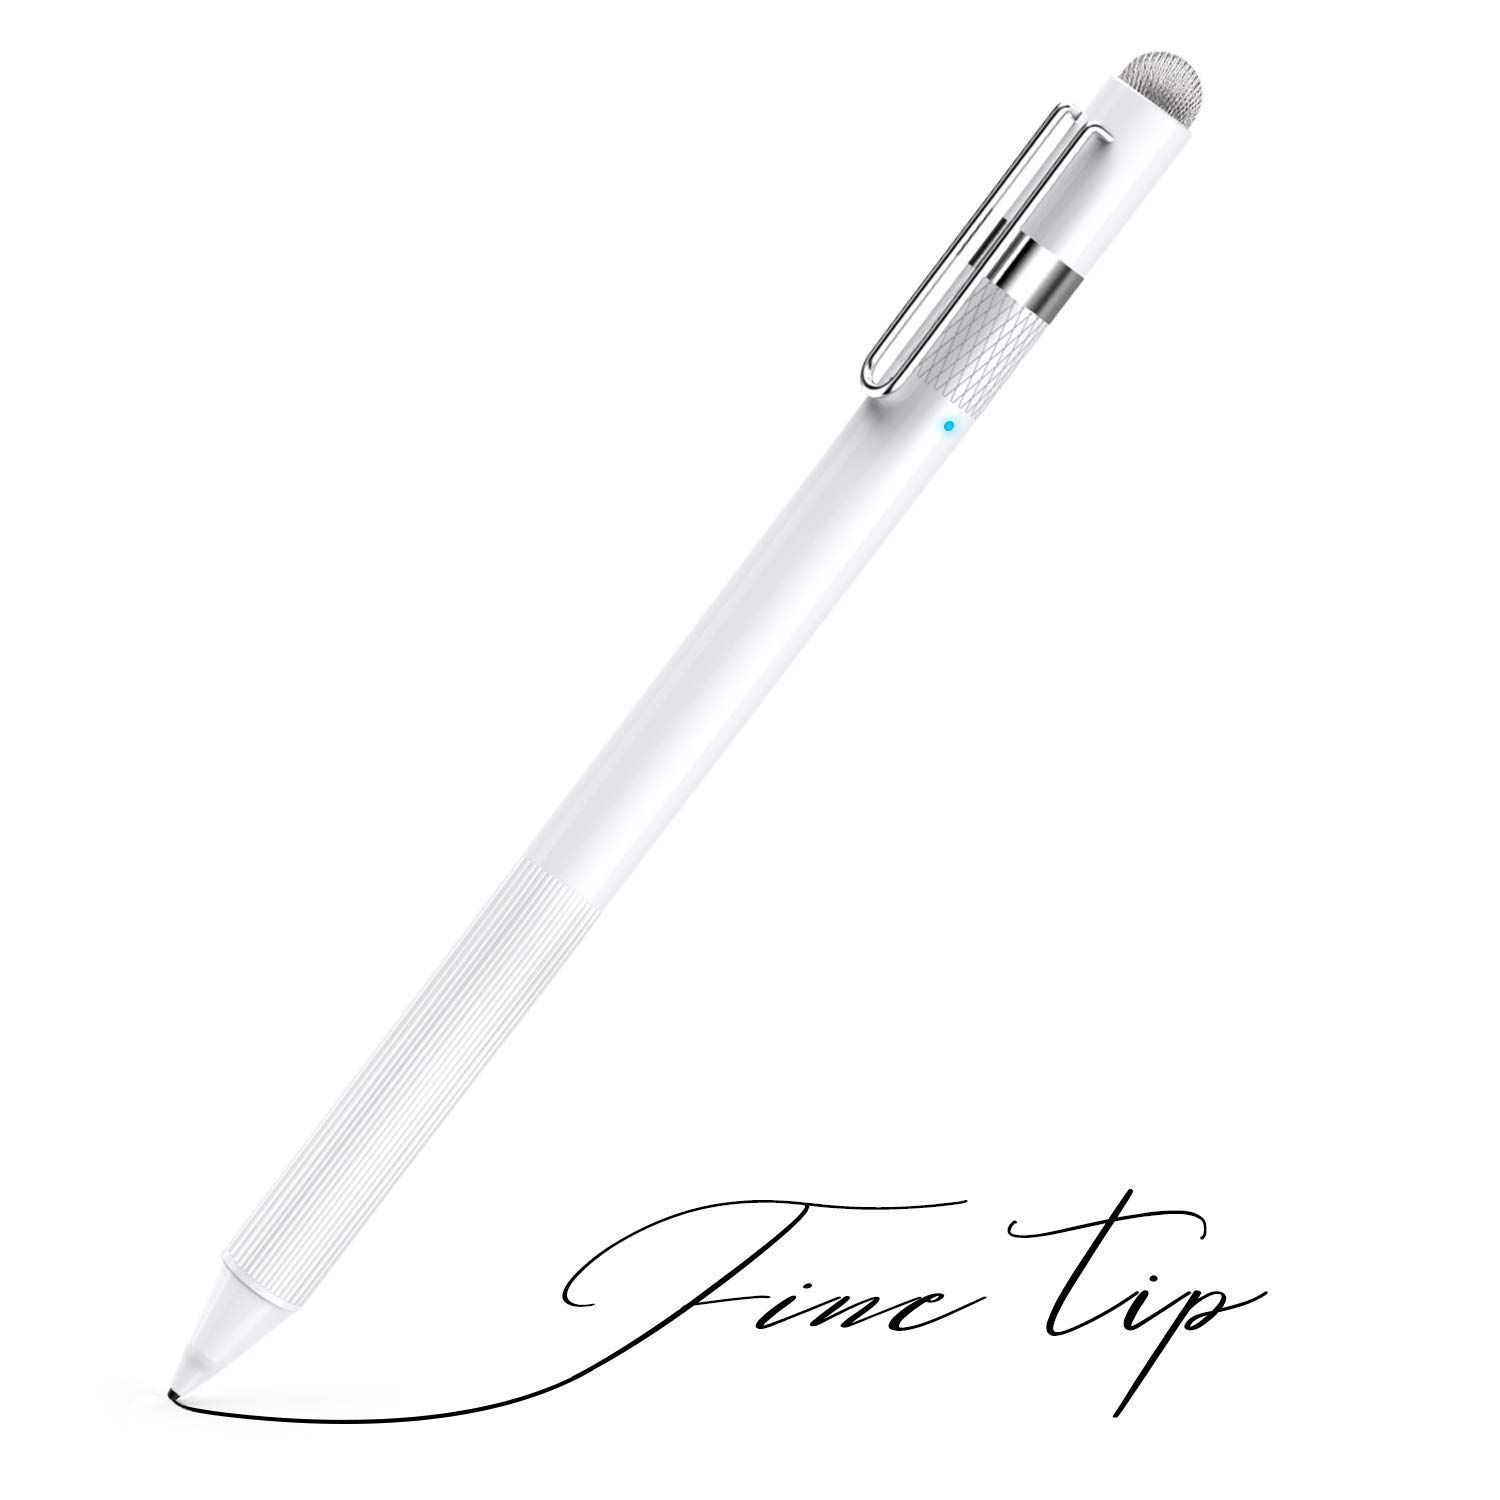 MEKO 1.6mm Fine Tip Active Digital Stylus Pen with Universal Fiber Tip 2-in-1 for Drawing and Handwriting Compatible with Apple Pen iPad iPhone and Andriod Touchscreen Cellphones, Tablets-White by MEKO